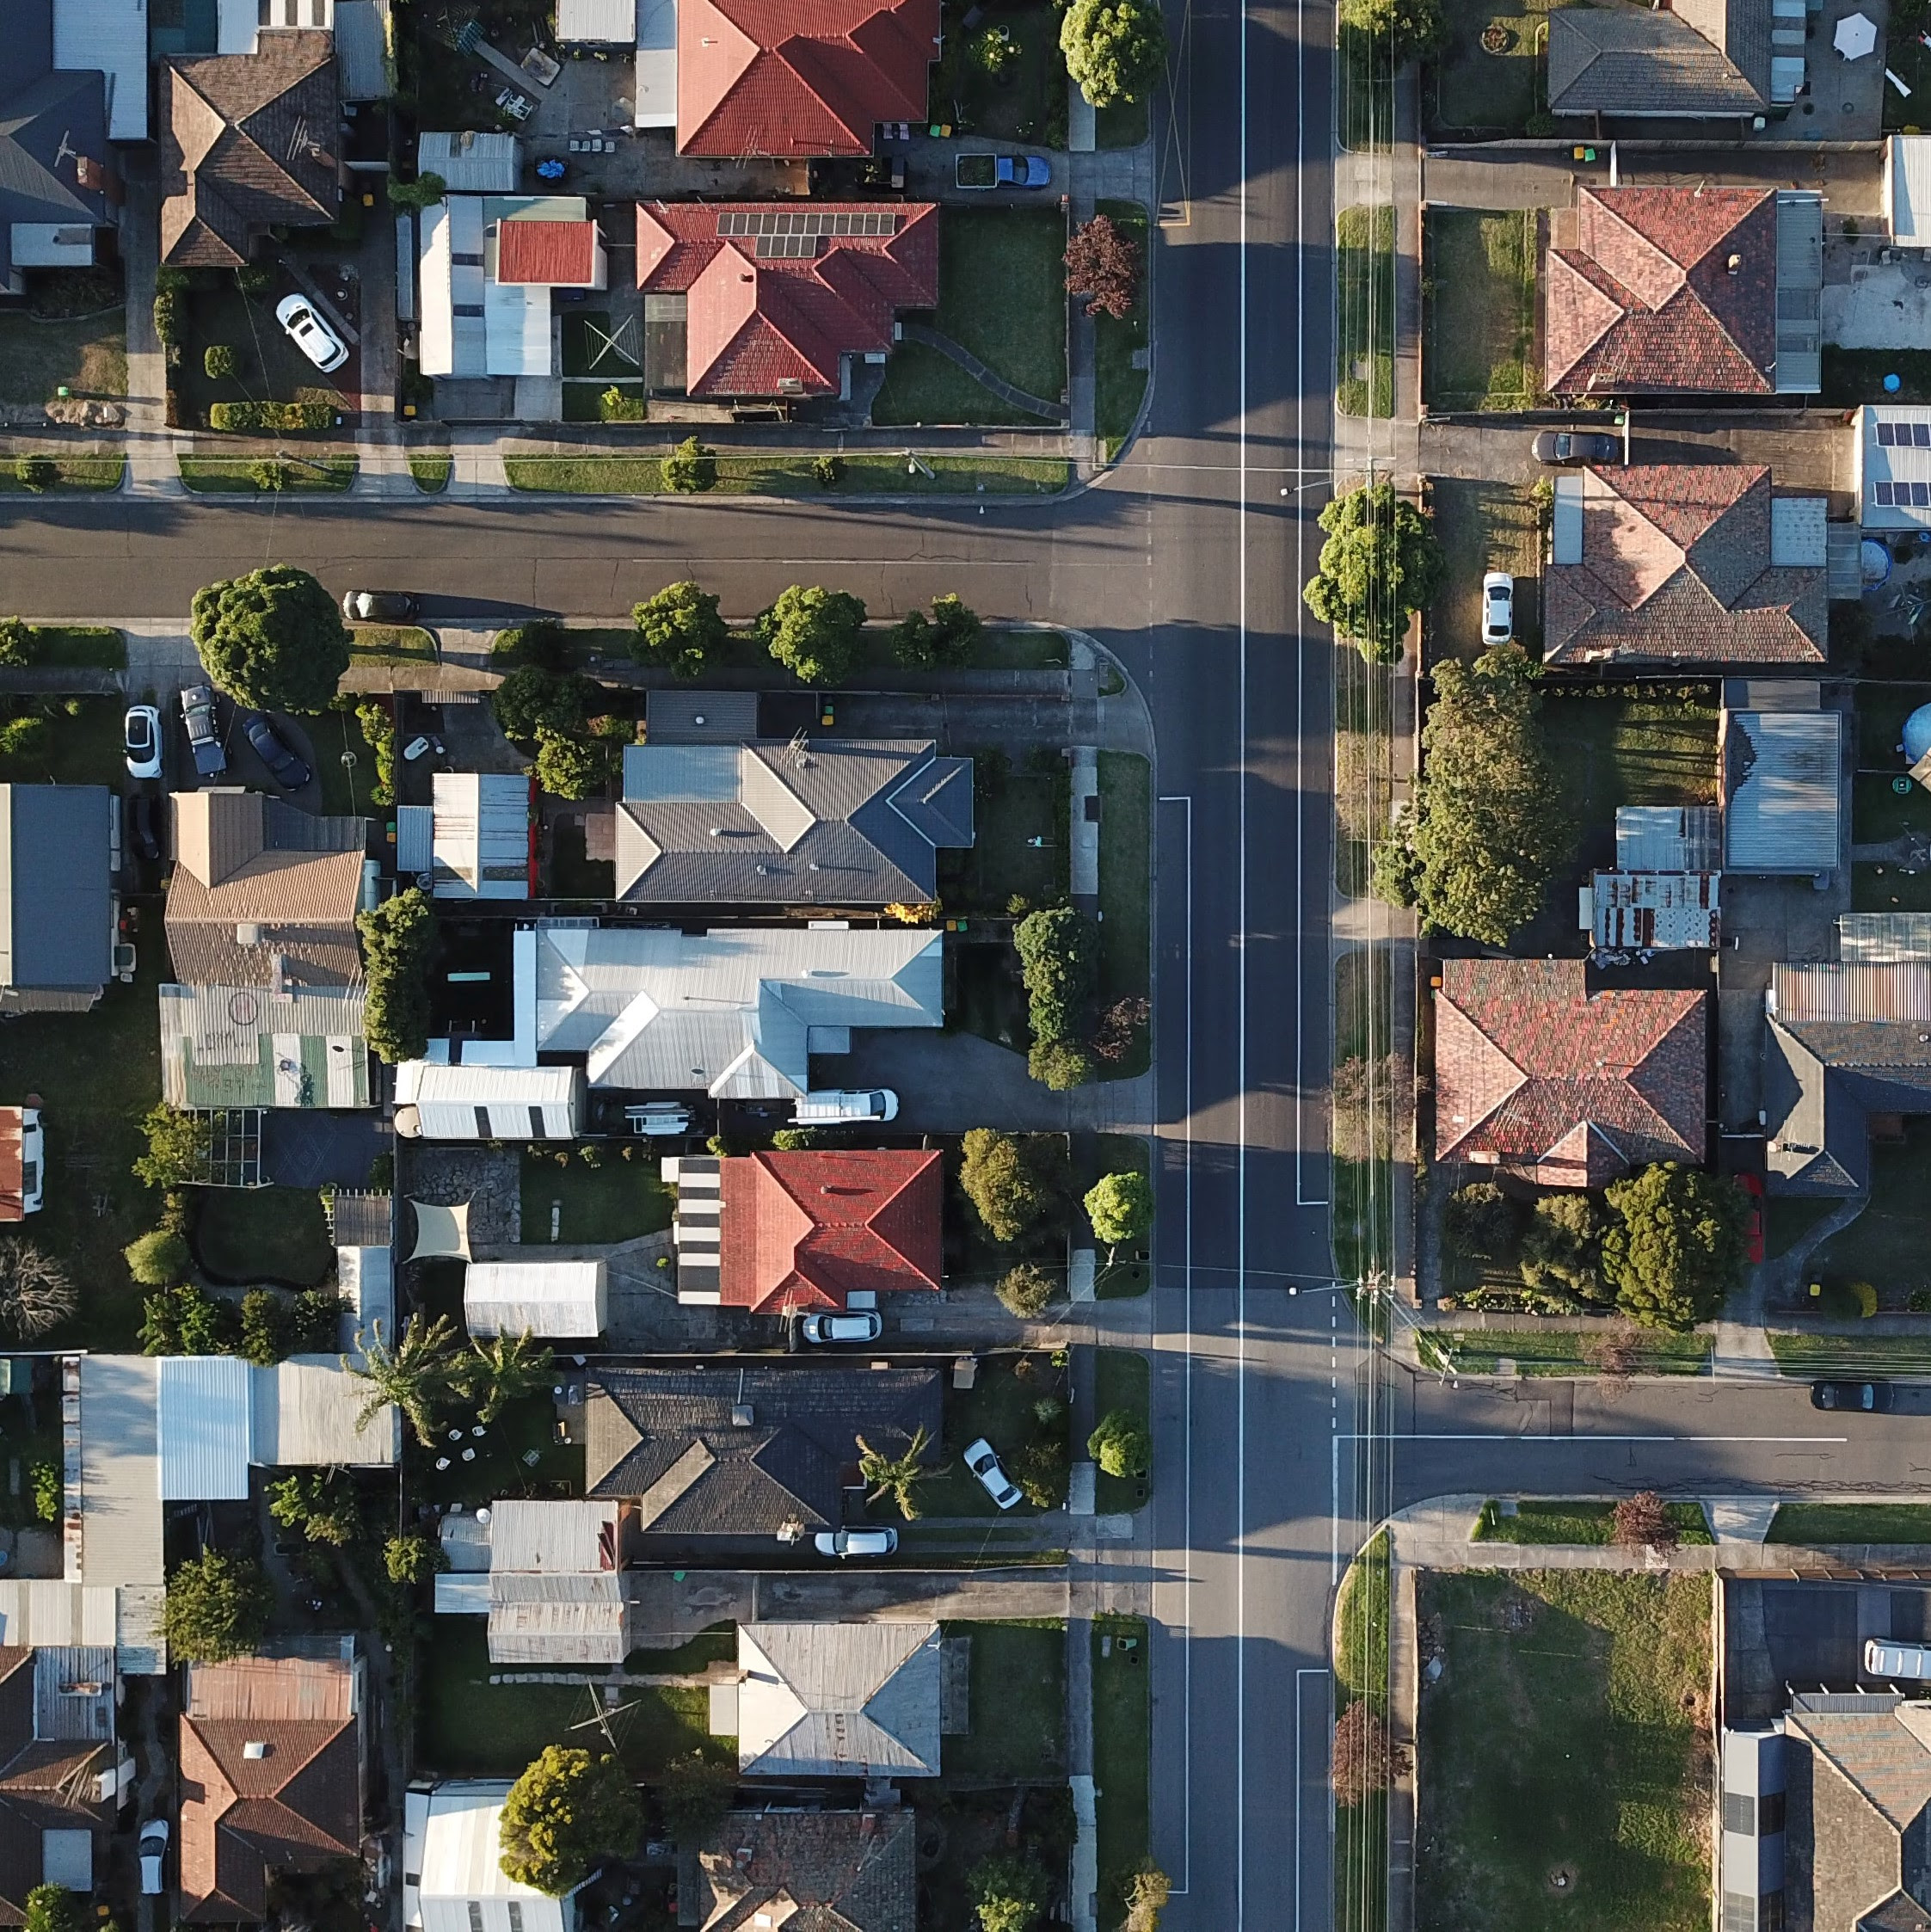 A Glimpse into COVID-19's Effect on Canadian Housing Markets